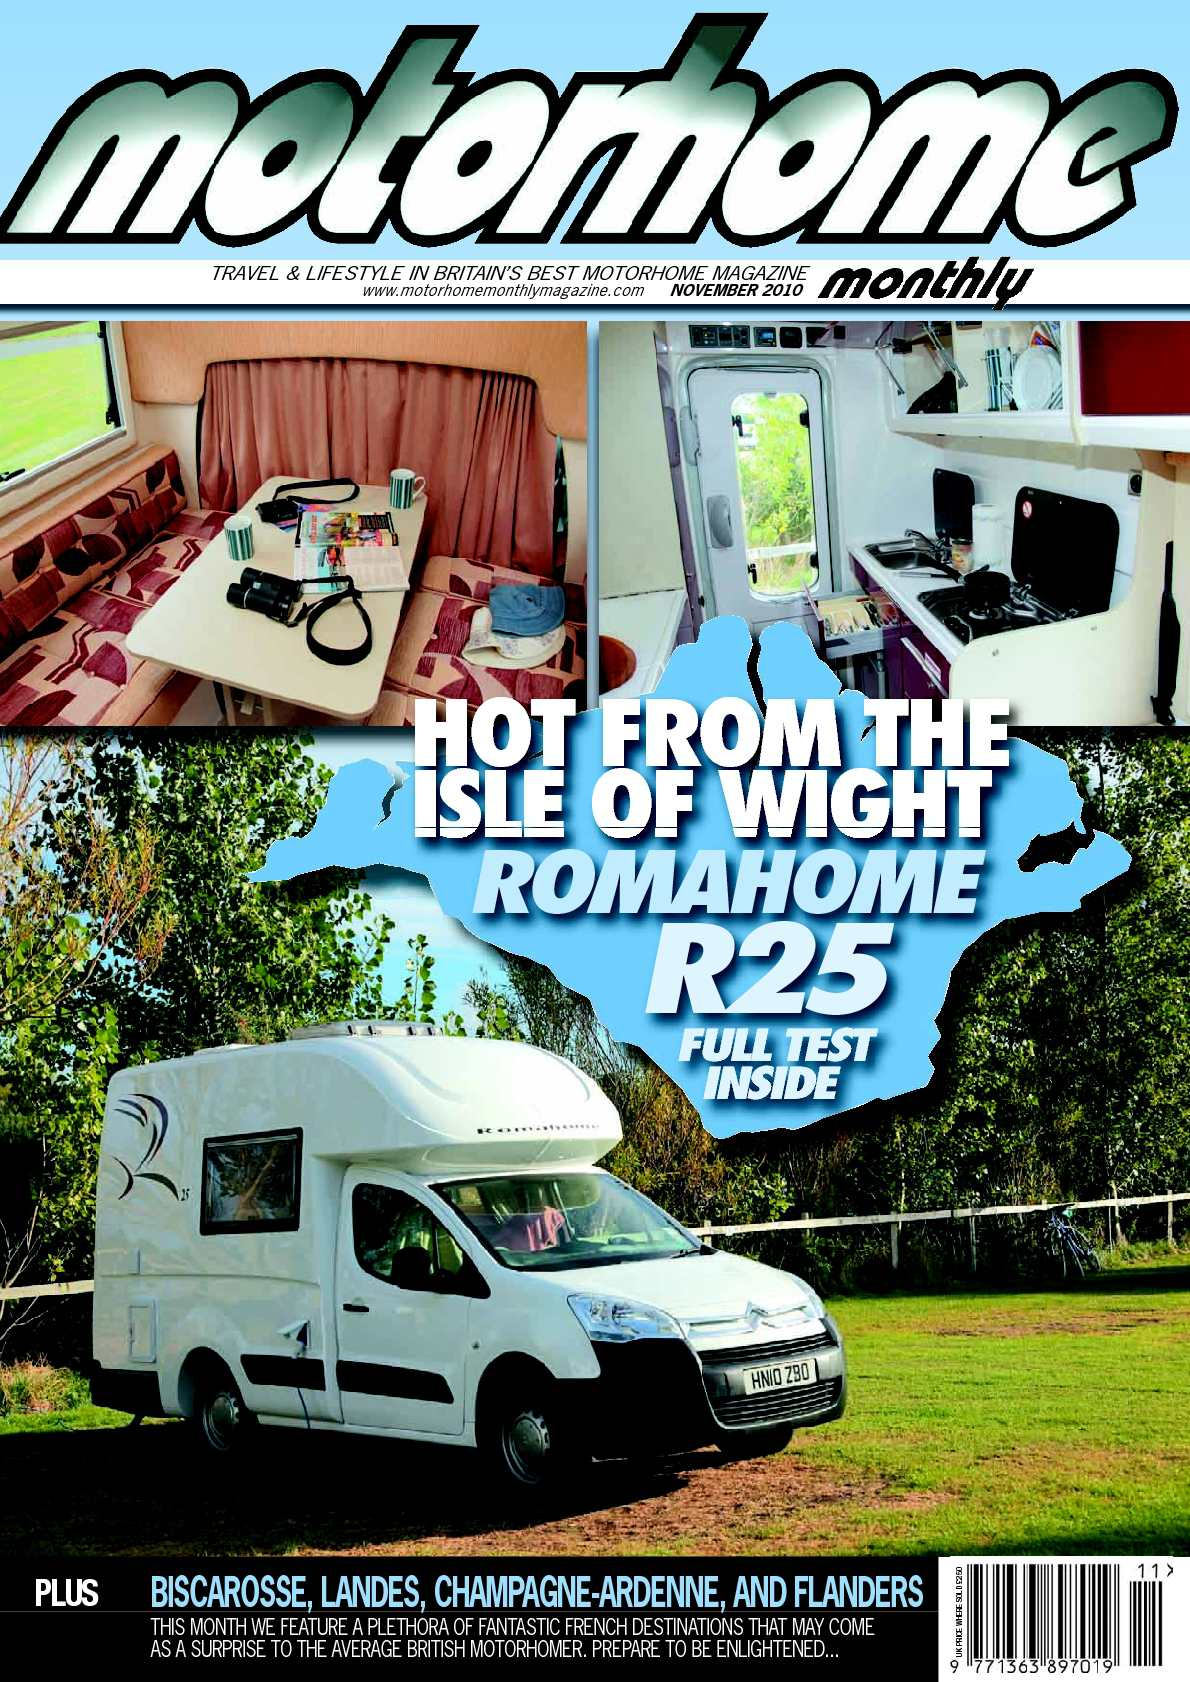 Connecteur Mc4 Leroy Merlin Frais Images Calaméo November 2011 Motorhome Monthly Magazine